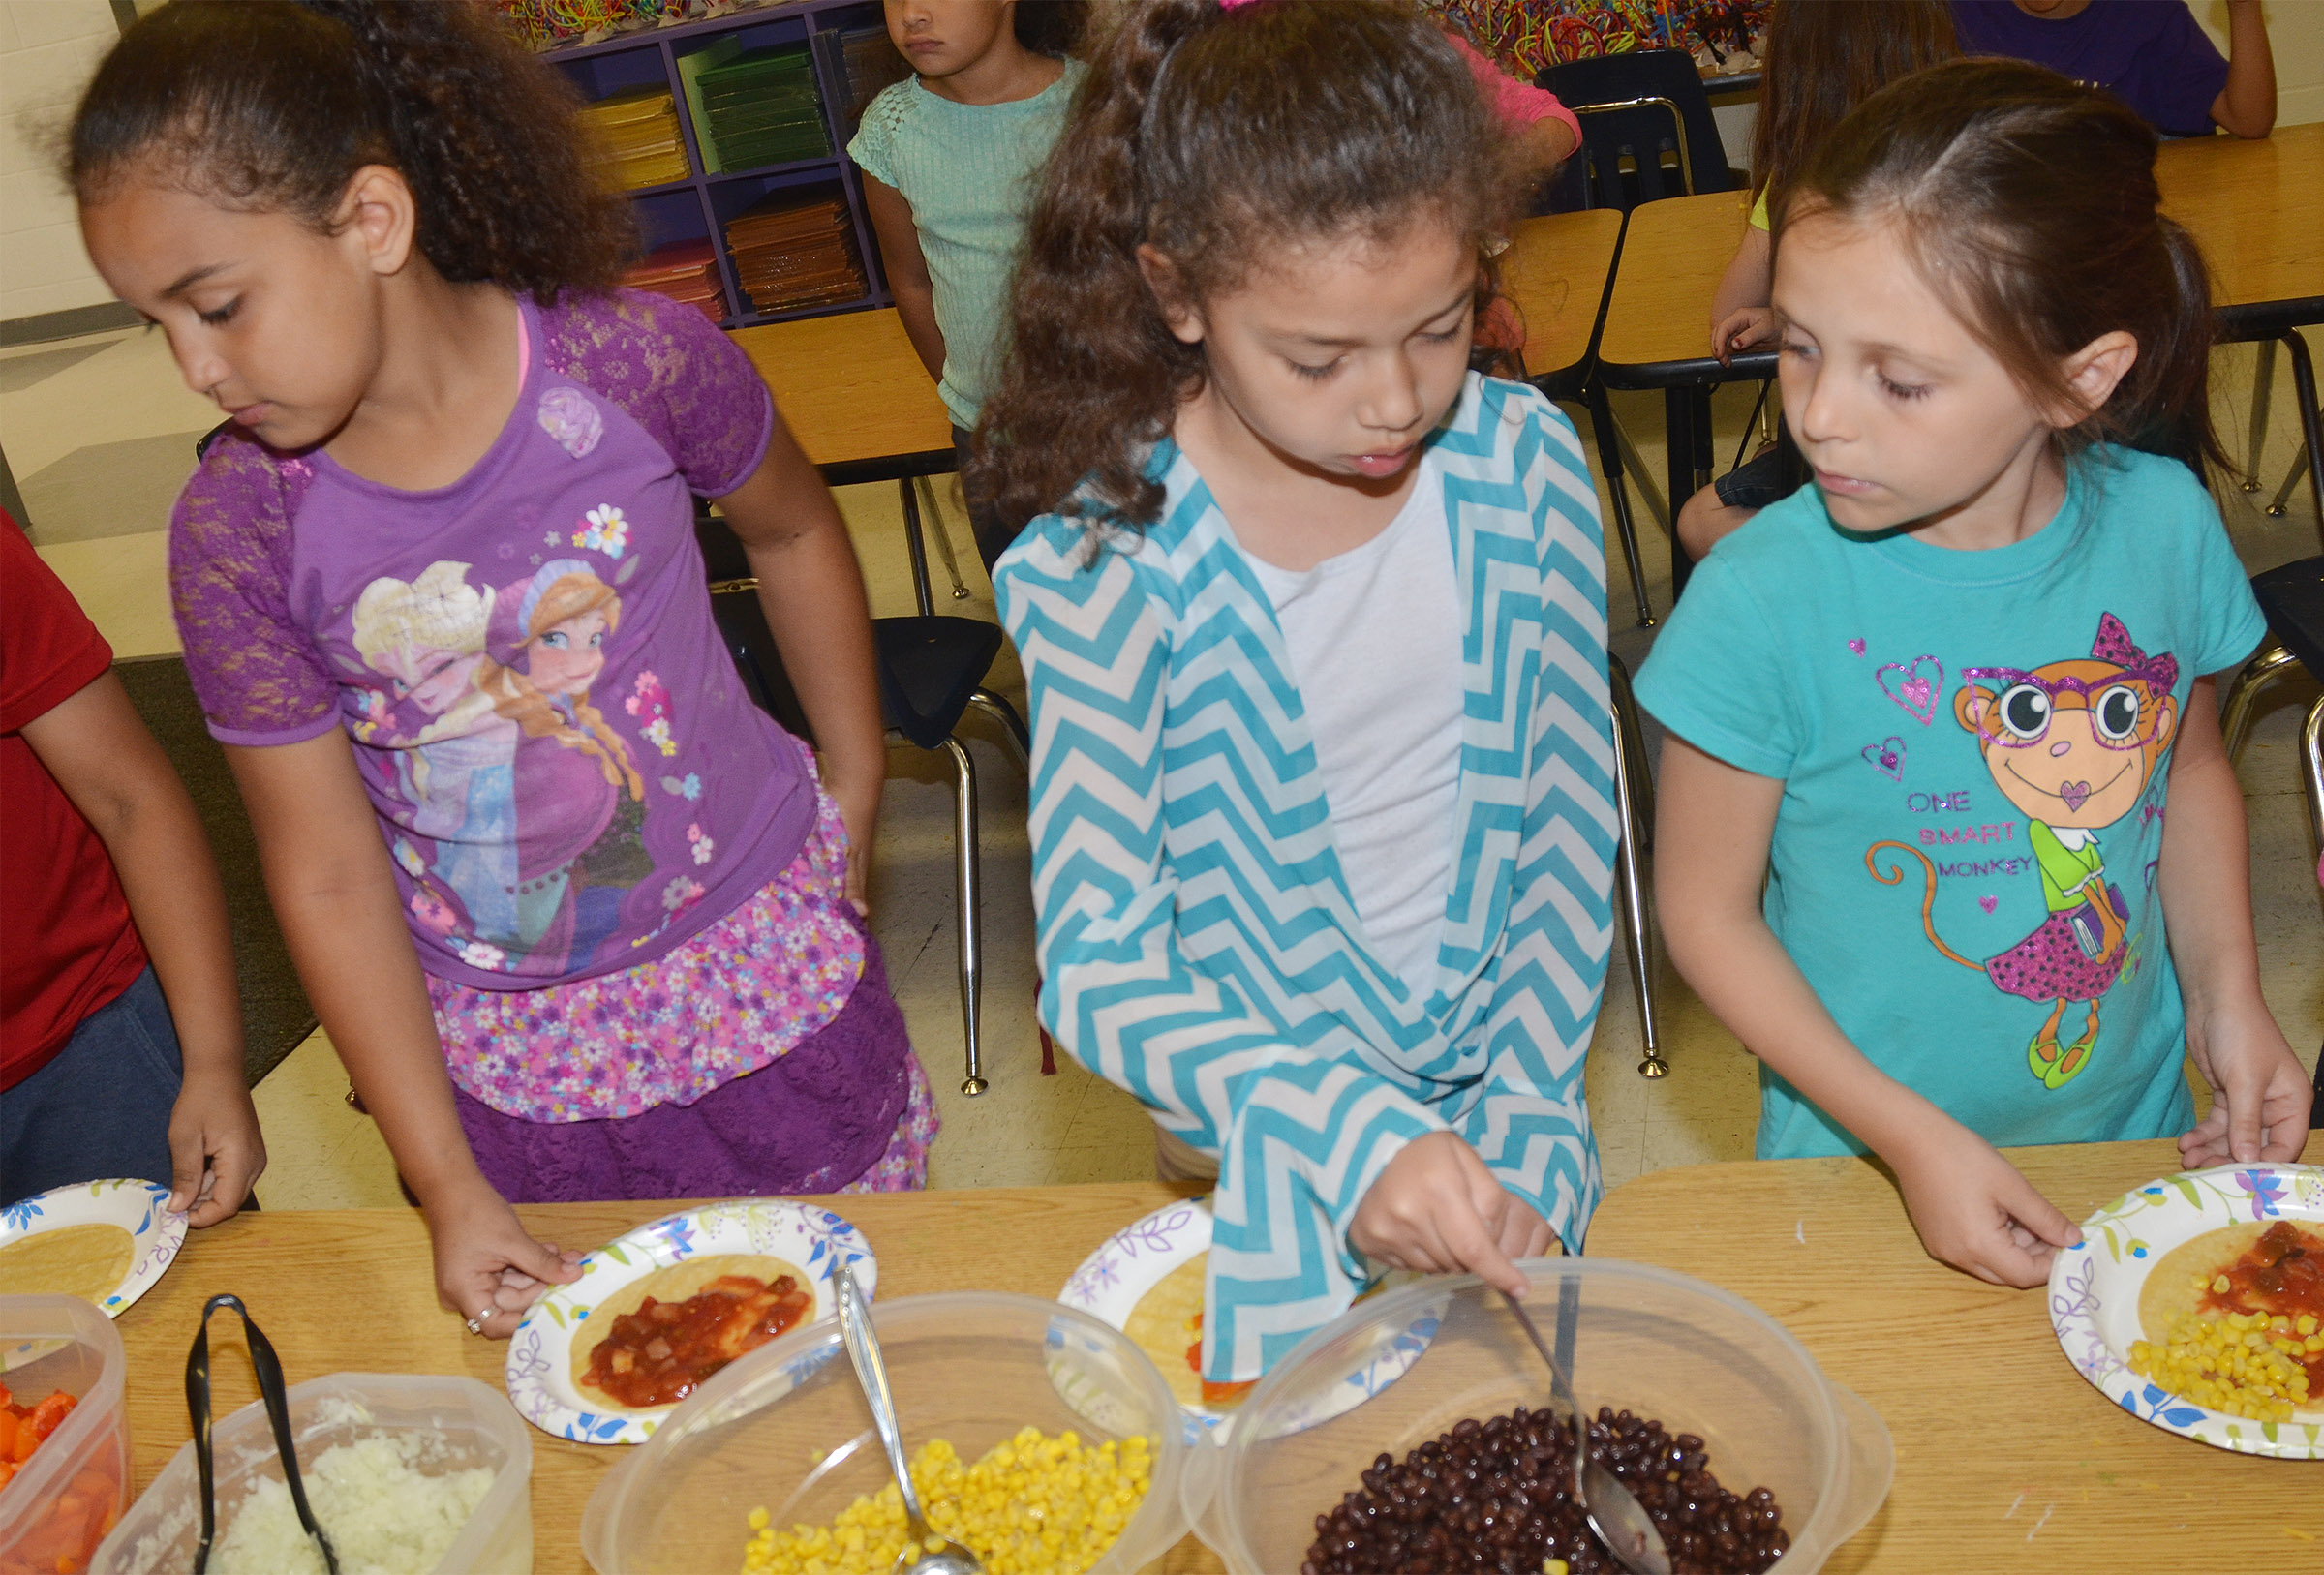 CES first-graders, from left, Maleigha Travis, Ammarissa Nunez and Serenity Taylor make their own Mexican pizzas.